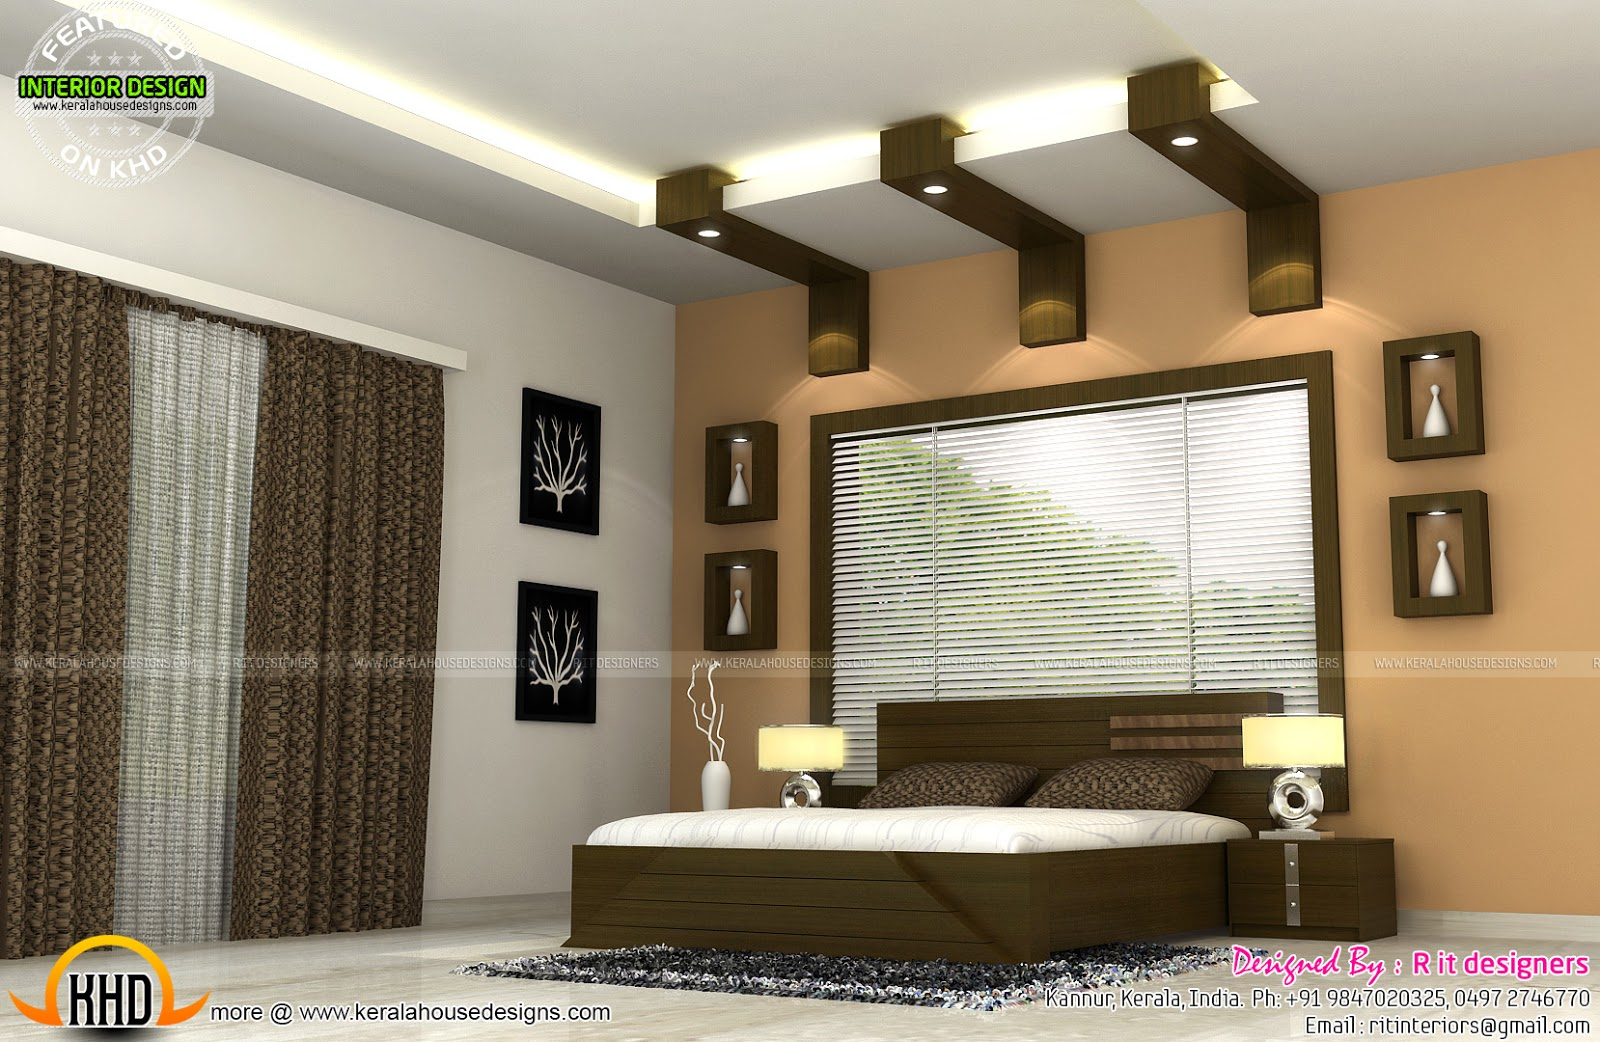 Interiors of bedrooms and kitchen kerala home design and House design inside